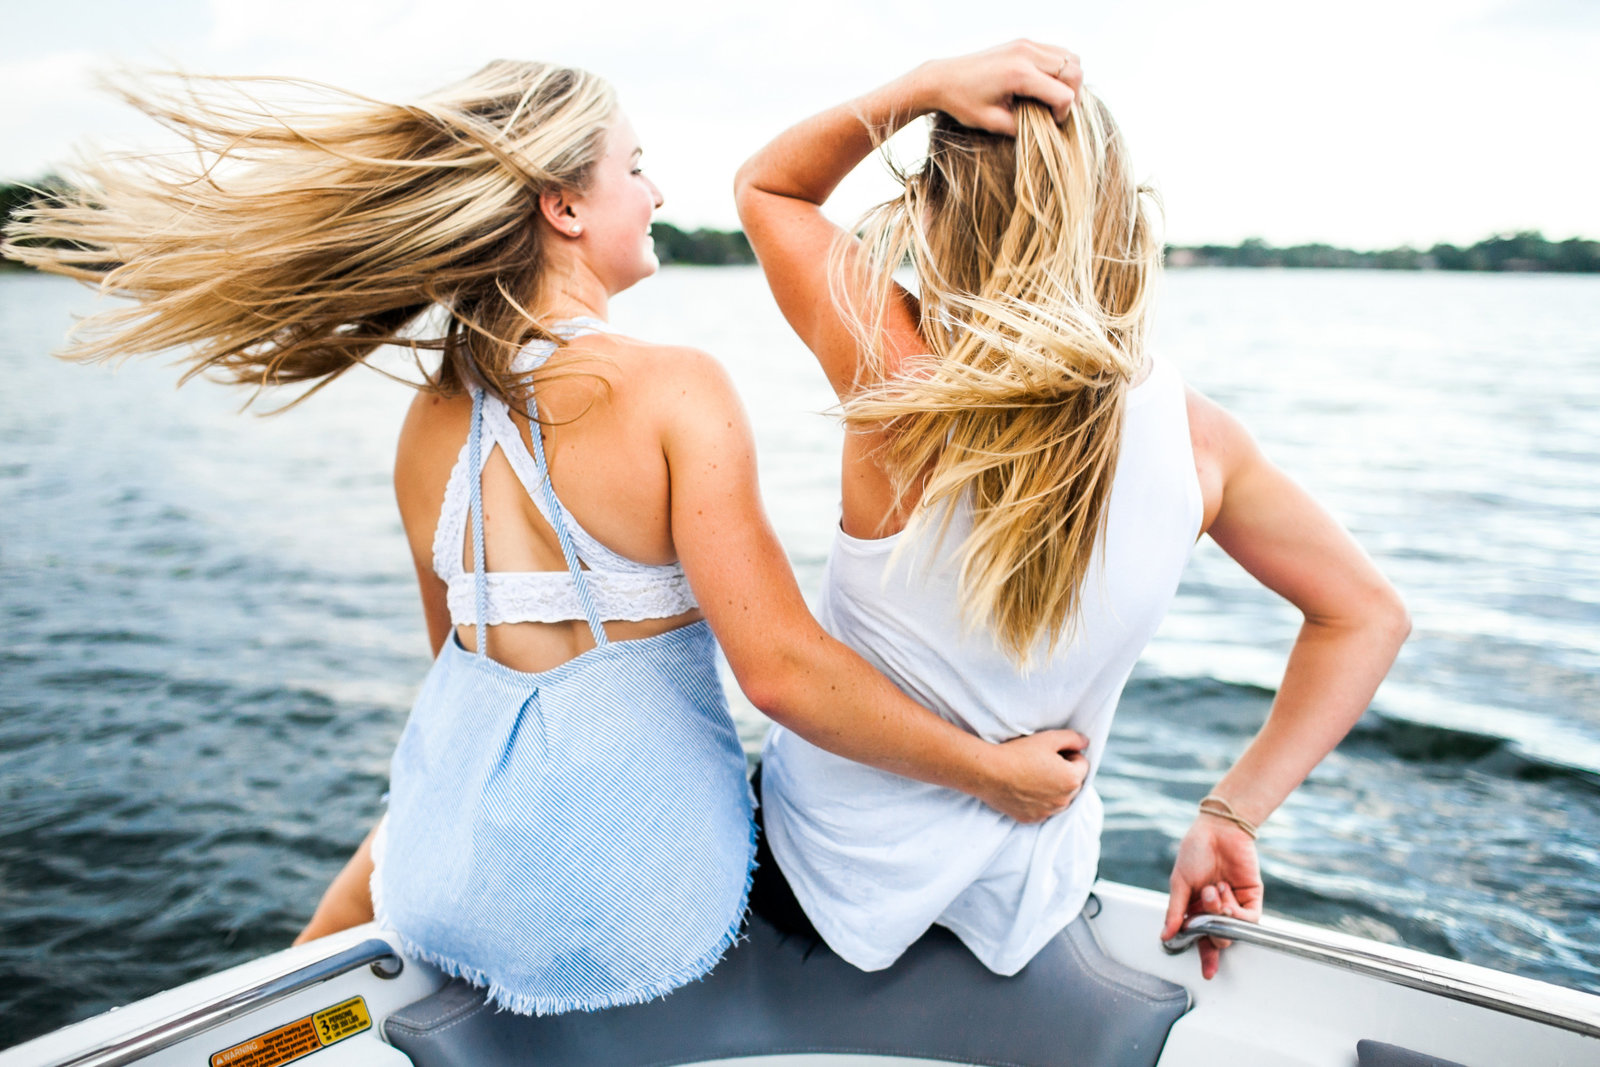 Best friends on a boat with hair blowing in the wind